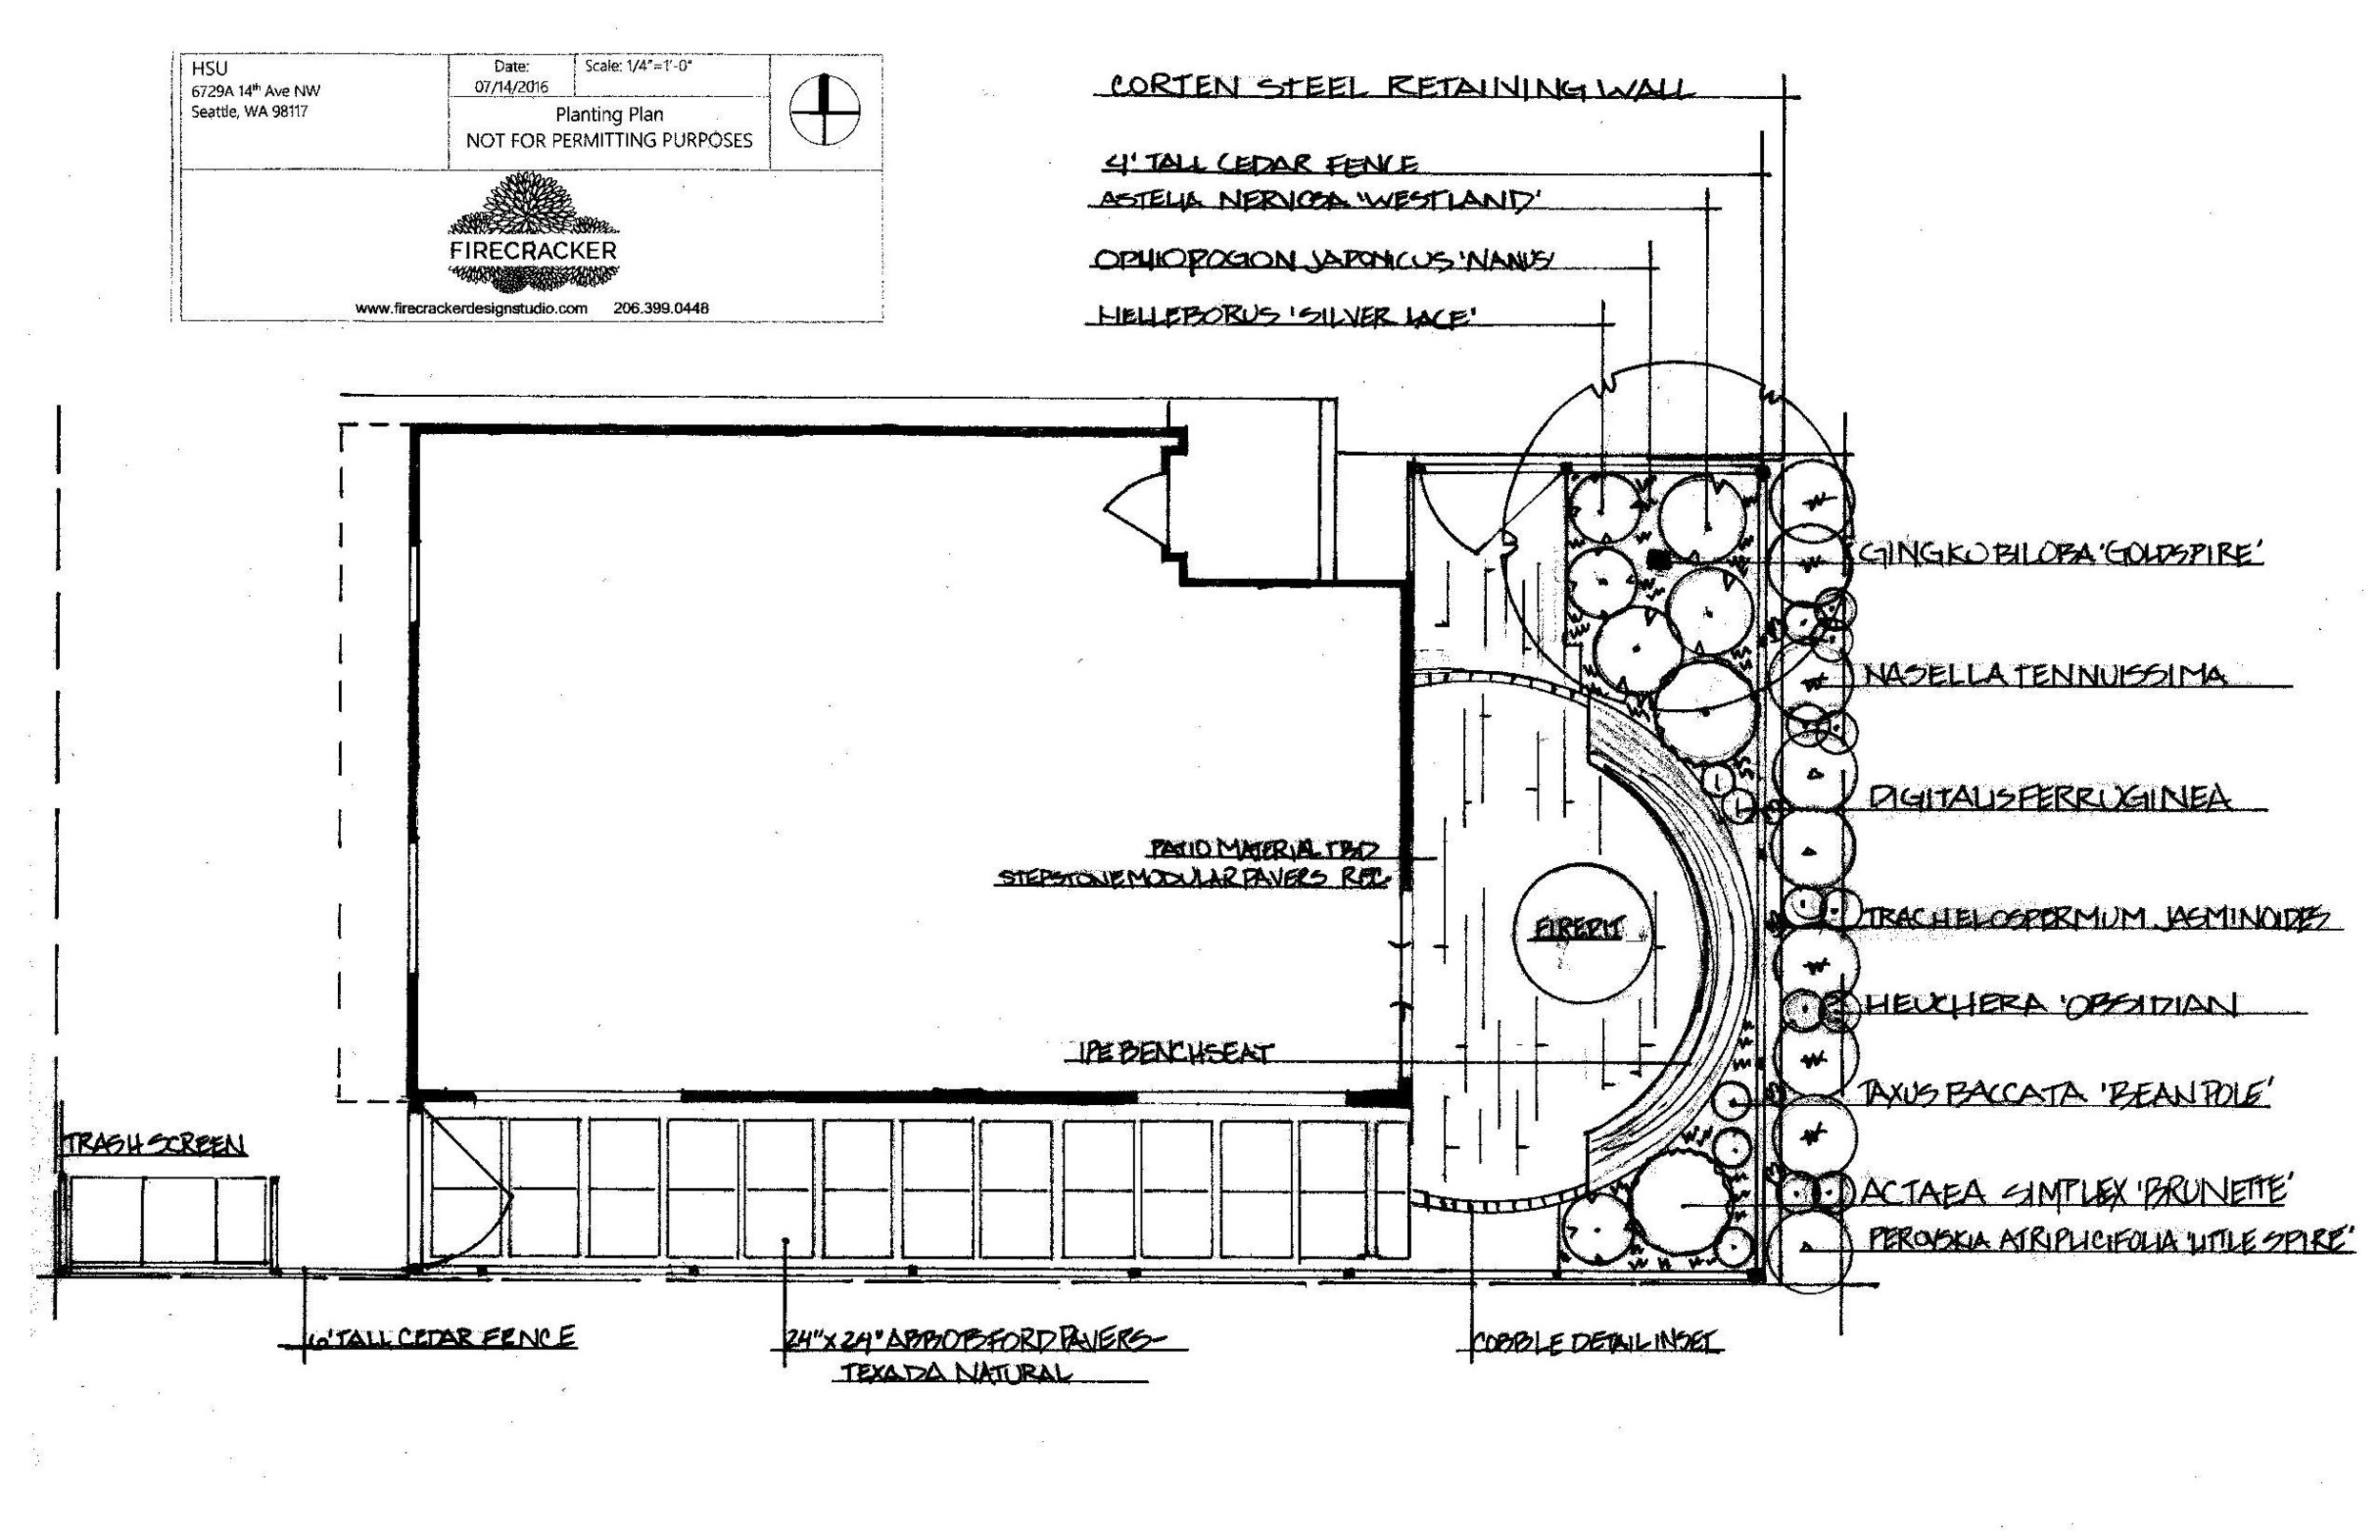 Hsu planting plan concept - NOT FOR PERMITS20160720_16122998-page-001.jpg